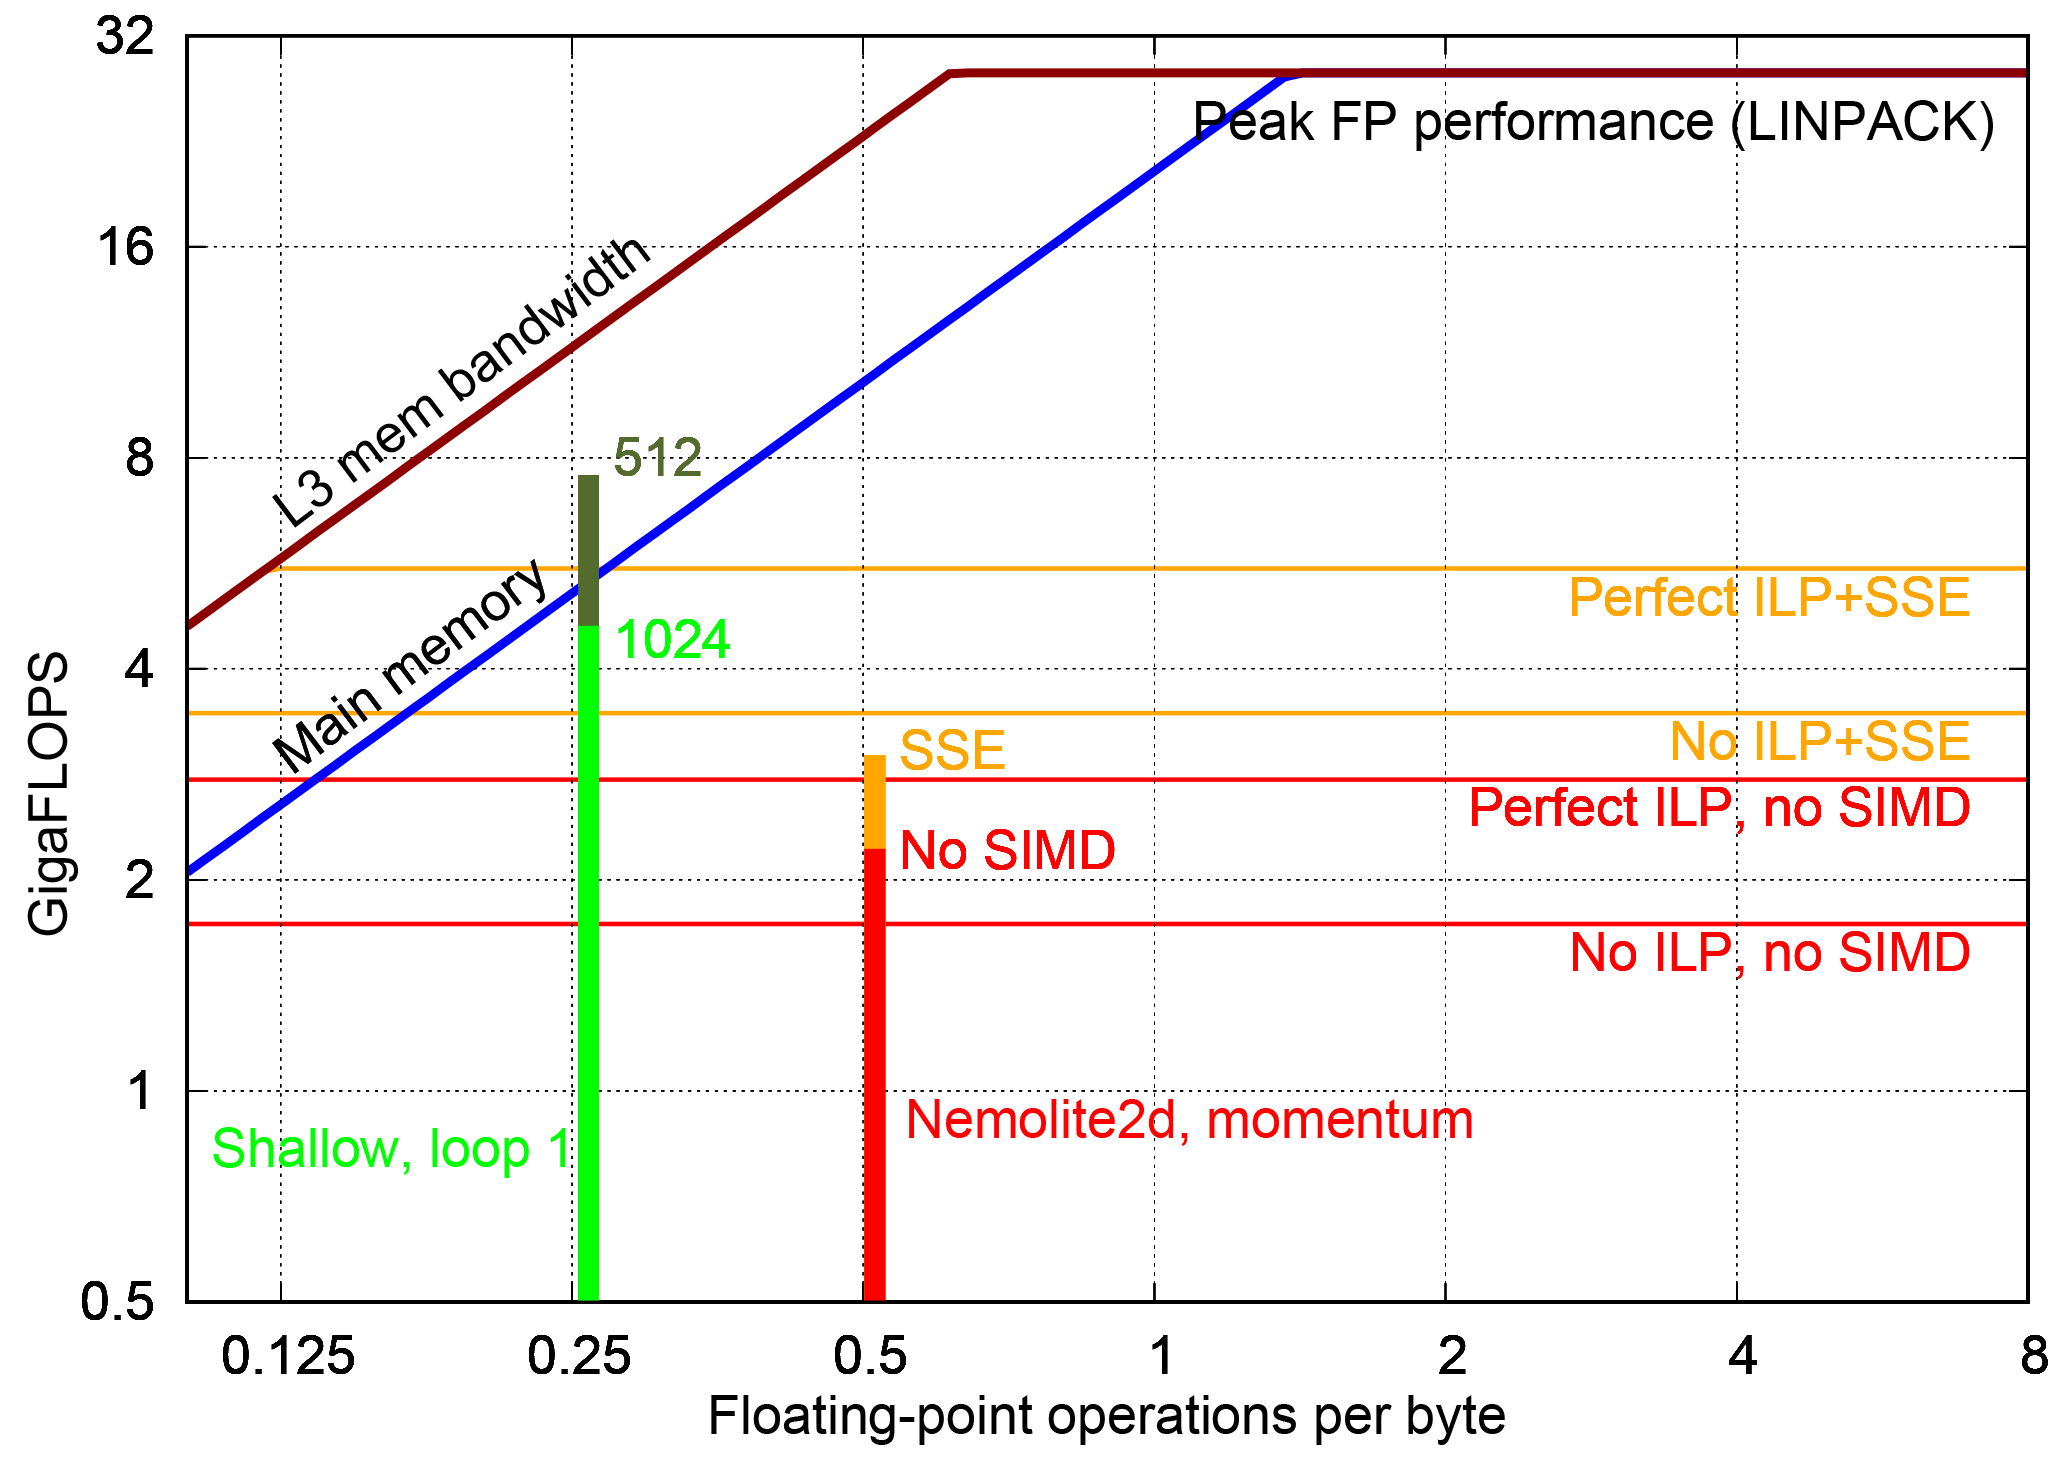 GMD - Portable multi- and many-core performance for finite